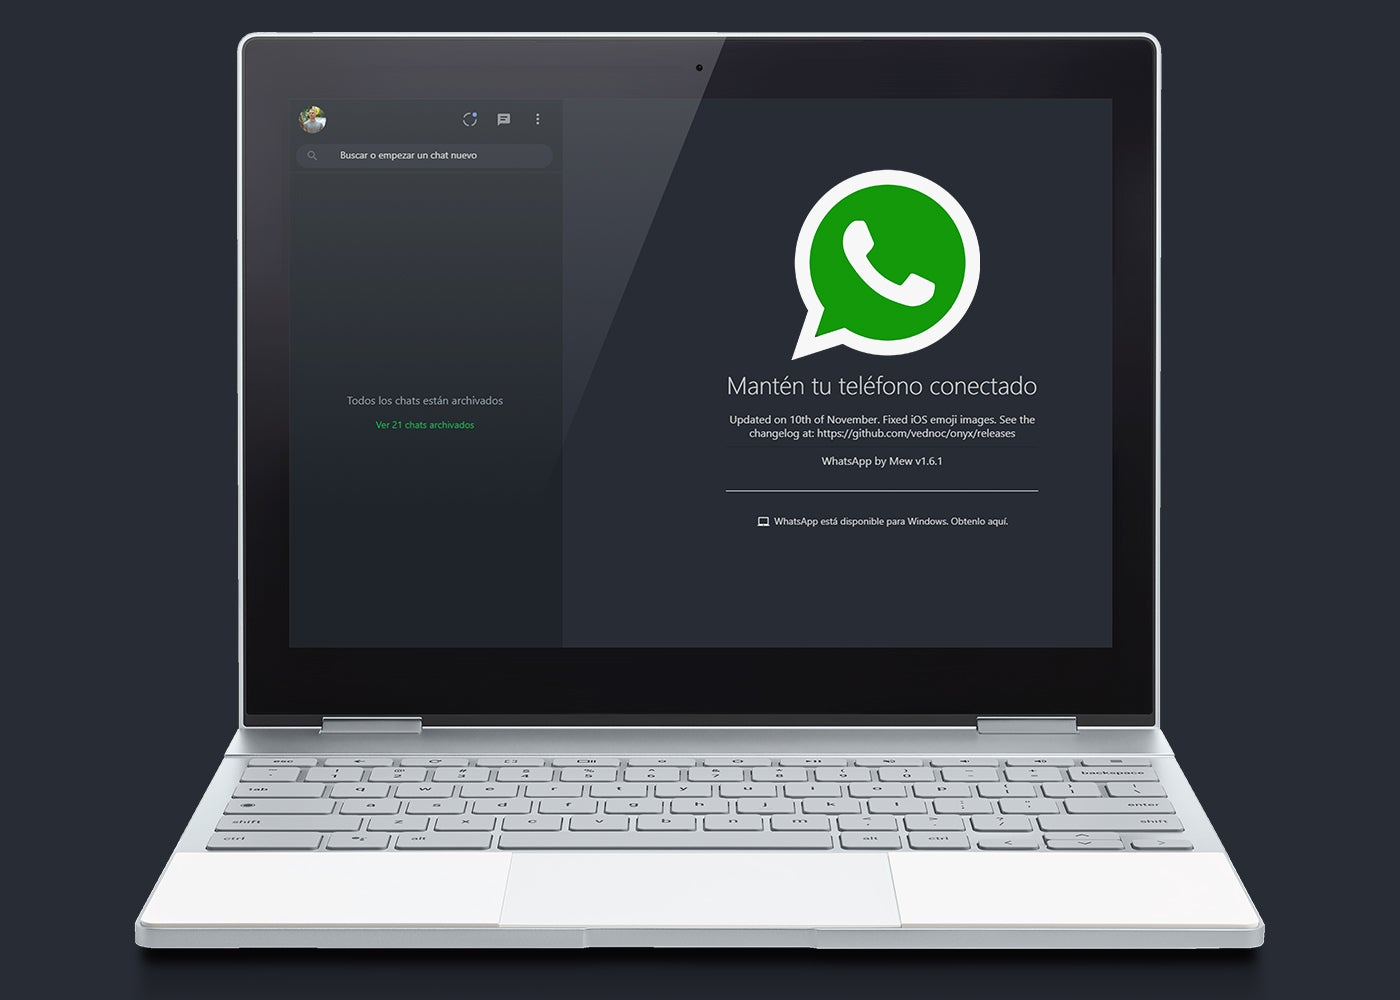 WhatsApp Web, dunkles Thema